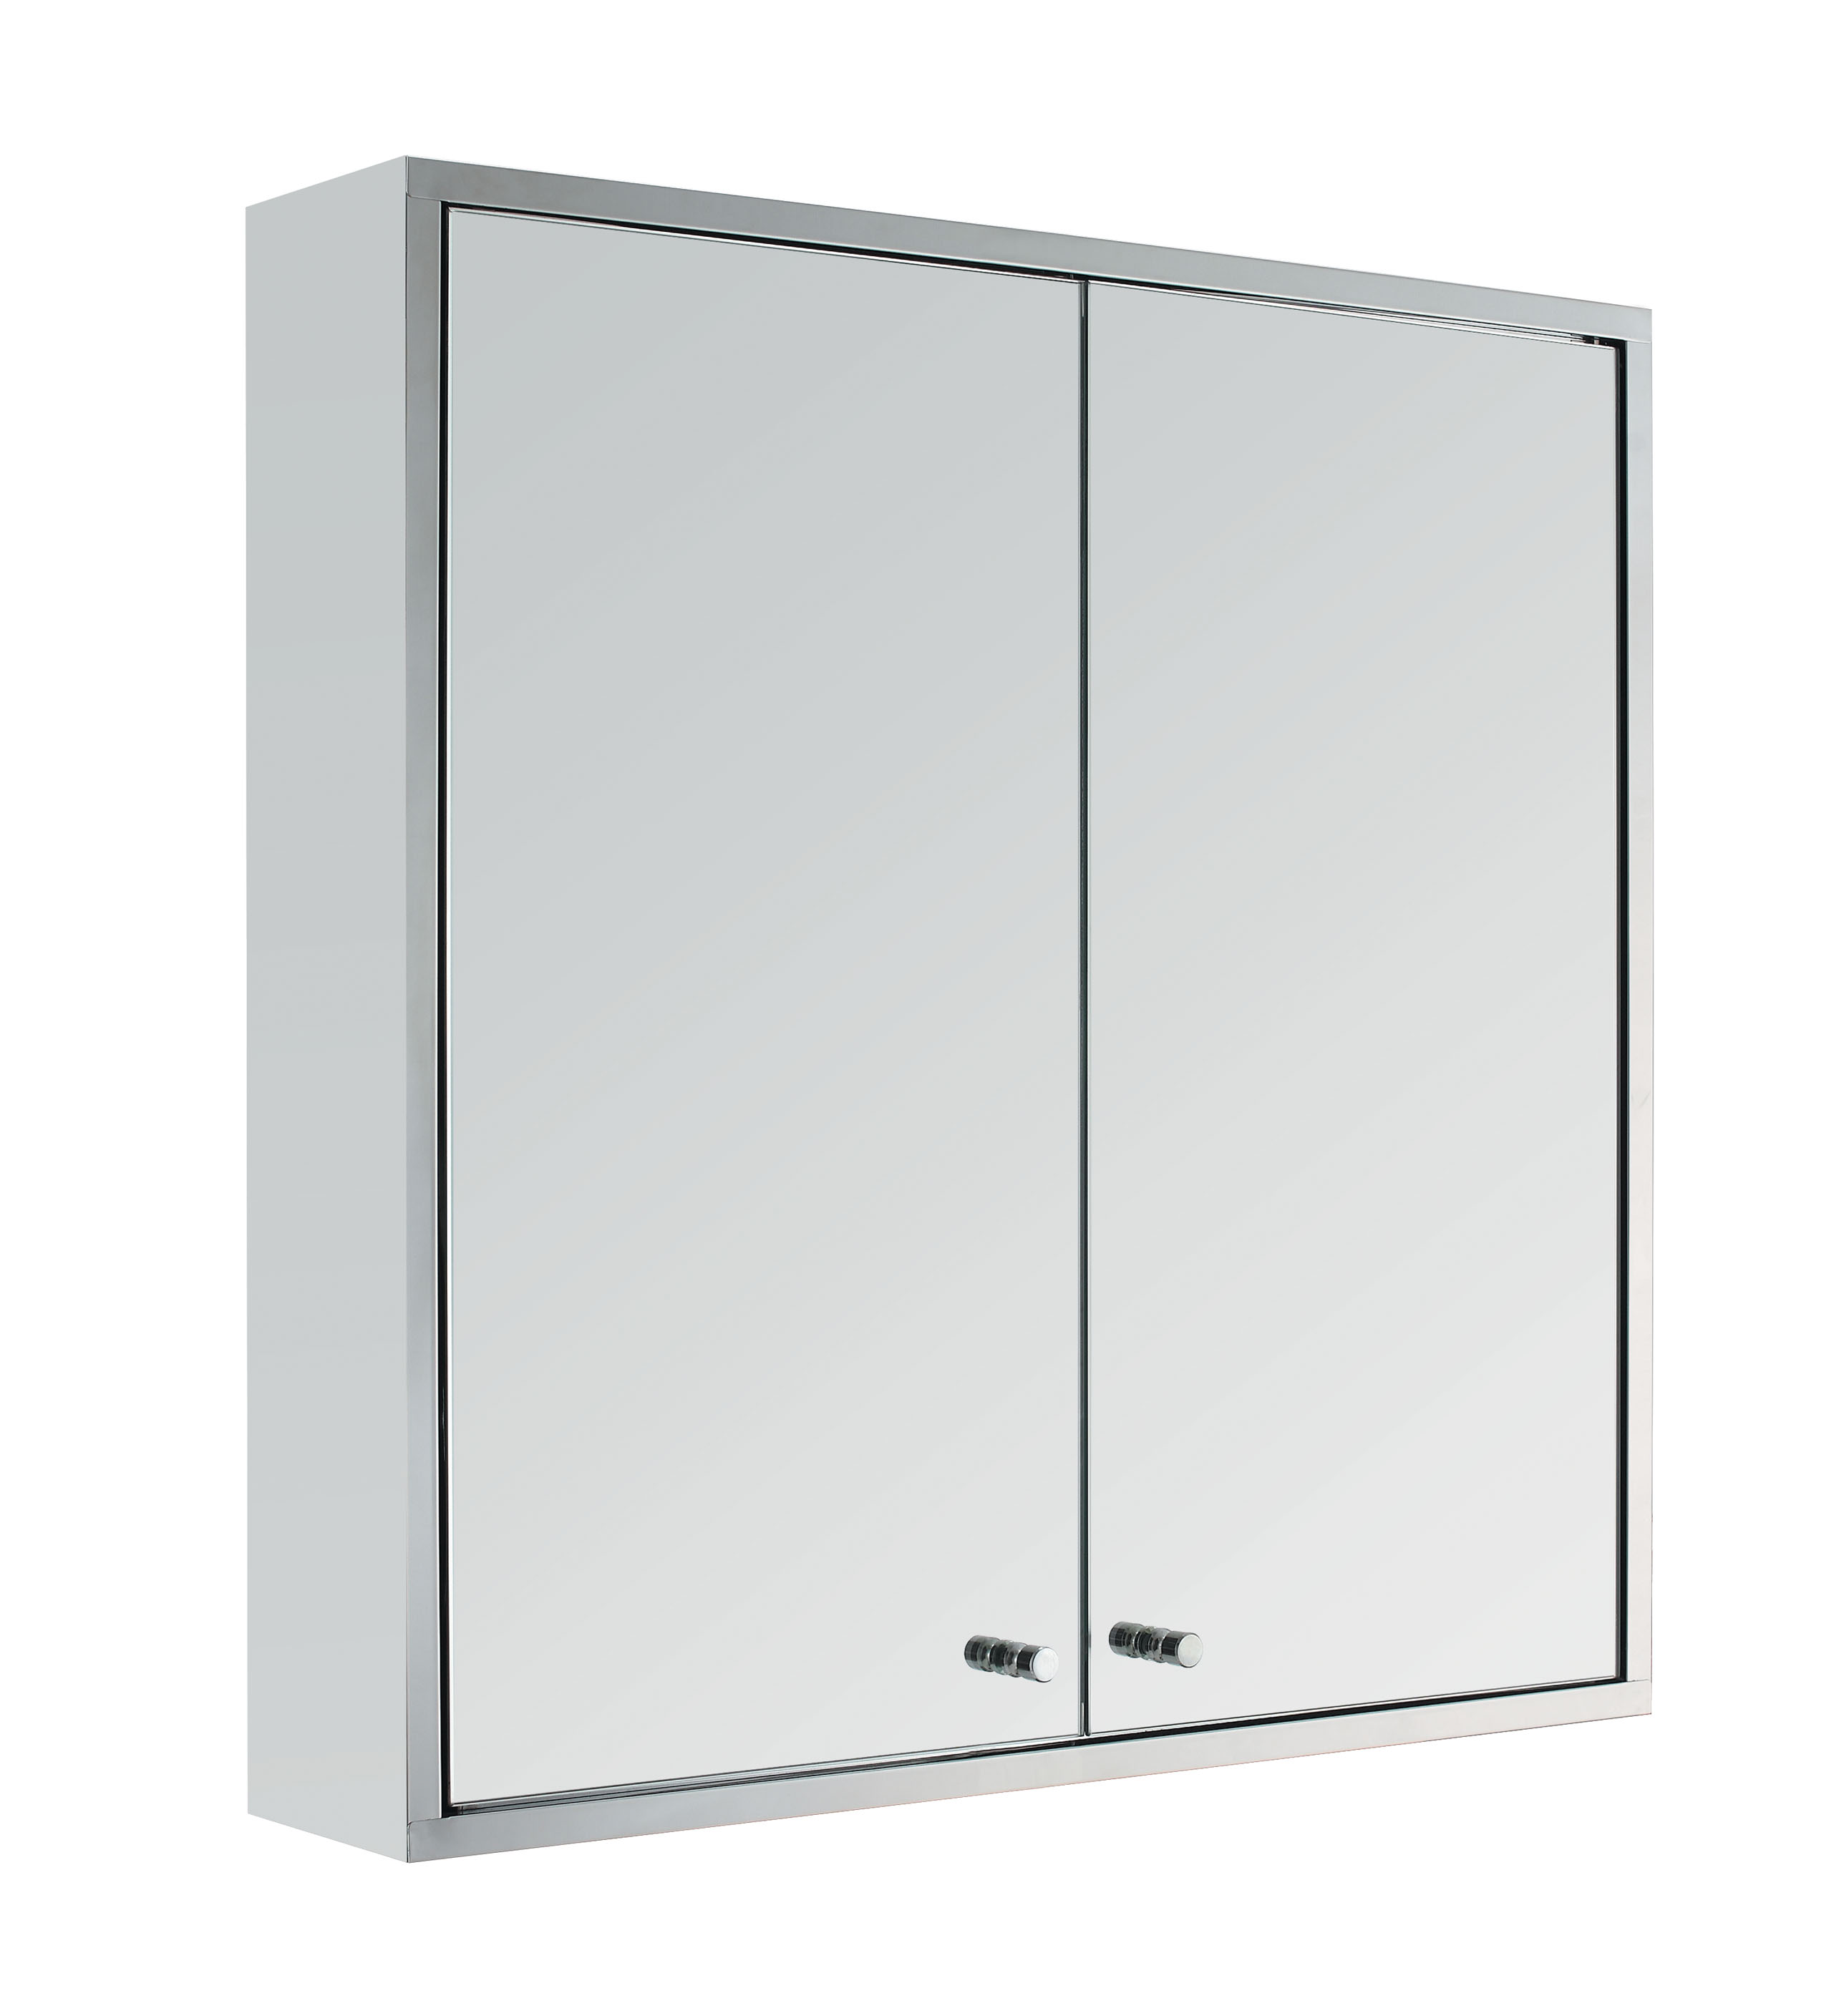 Stainless Steel Mirrored Bathroom Cabinets Stainless Steel Wall Mount Bathroom Cabinet With Shelf